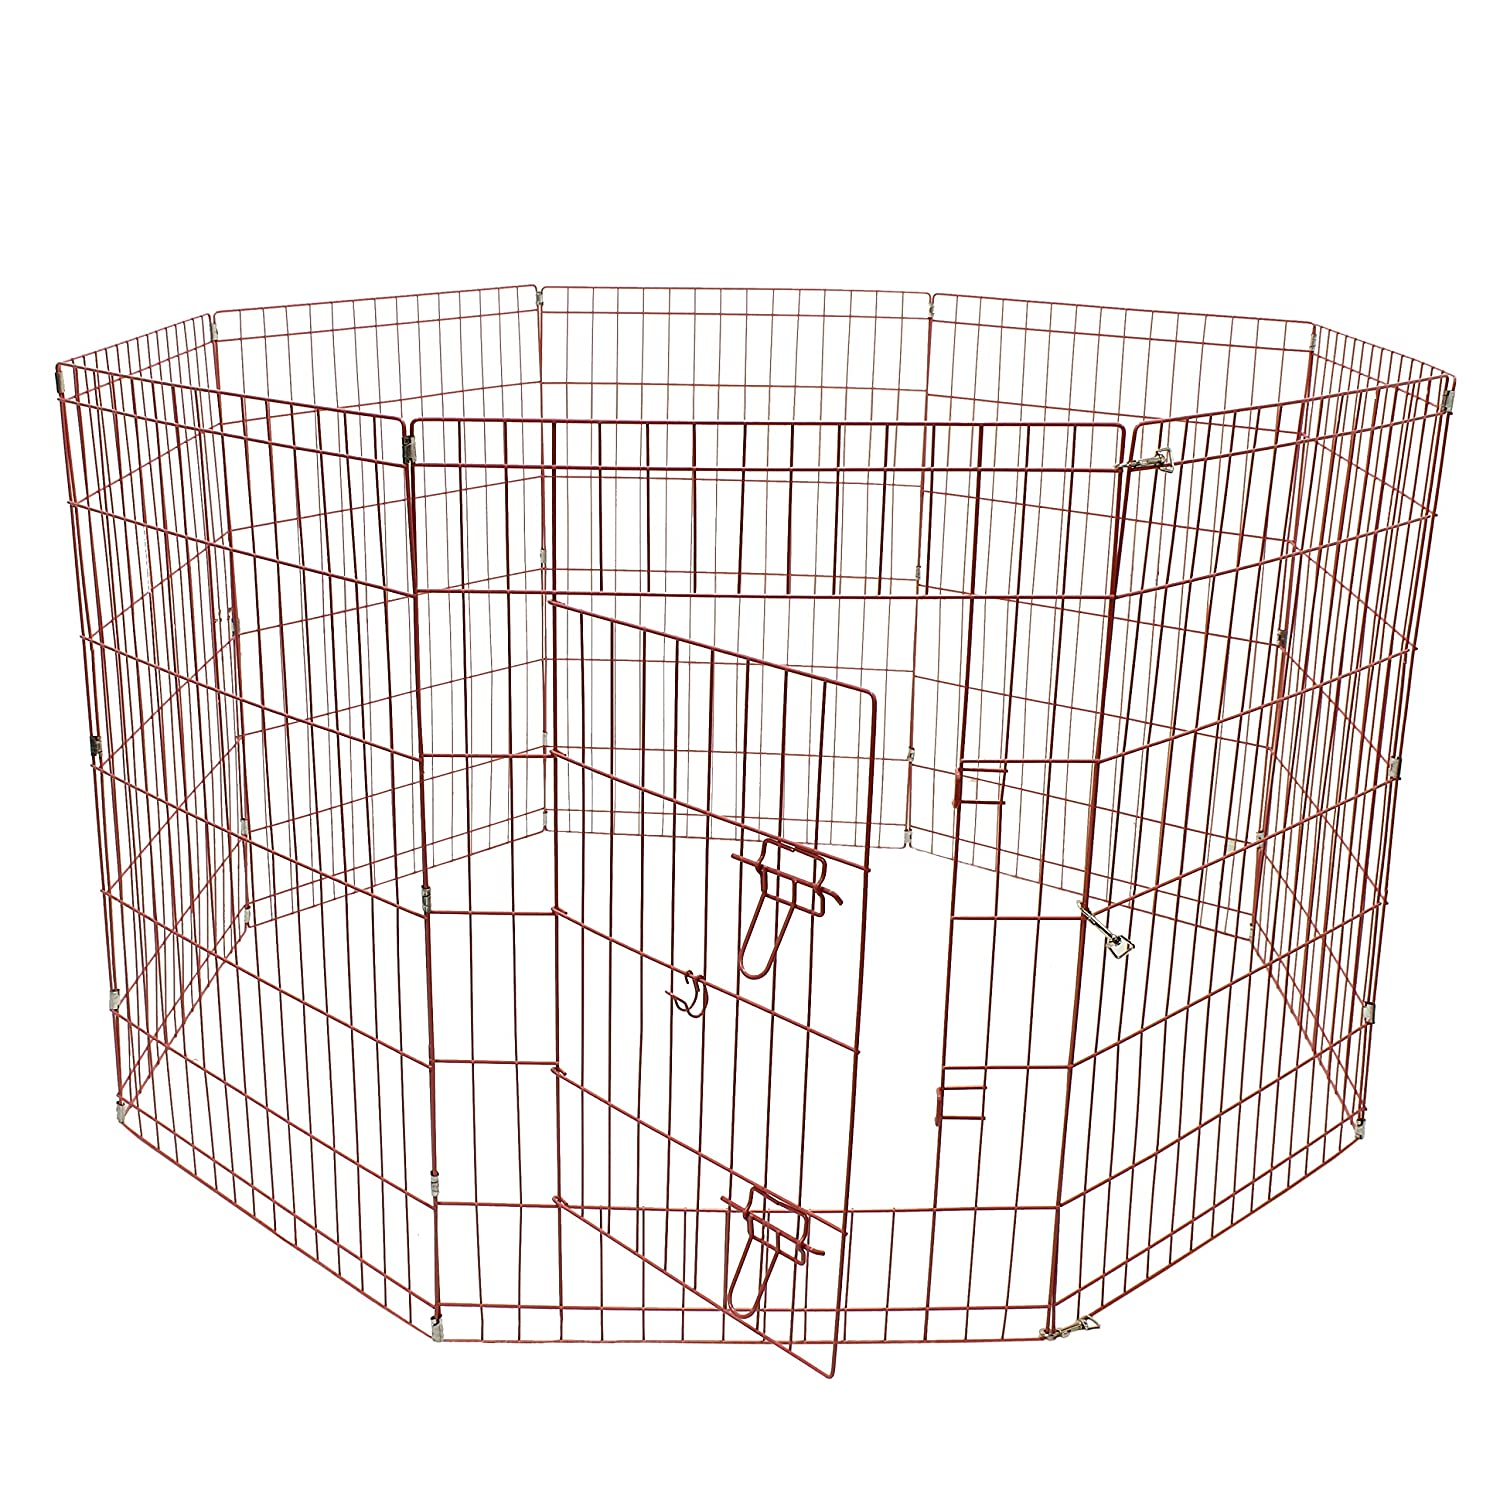 ALEKO SDK-42P Heavy Duty Pet Playpen Dog Kennel Pen Exercise Cage Fence 8 Panel 24 x 42 Inches Pink